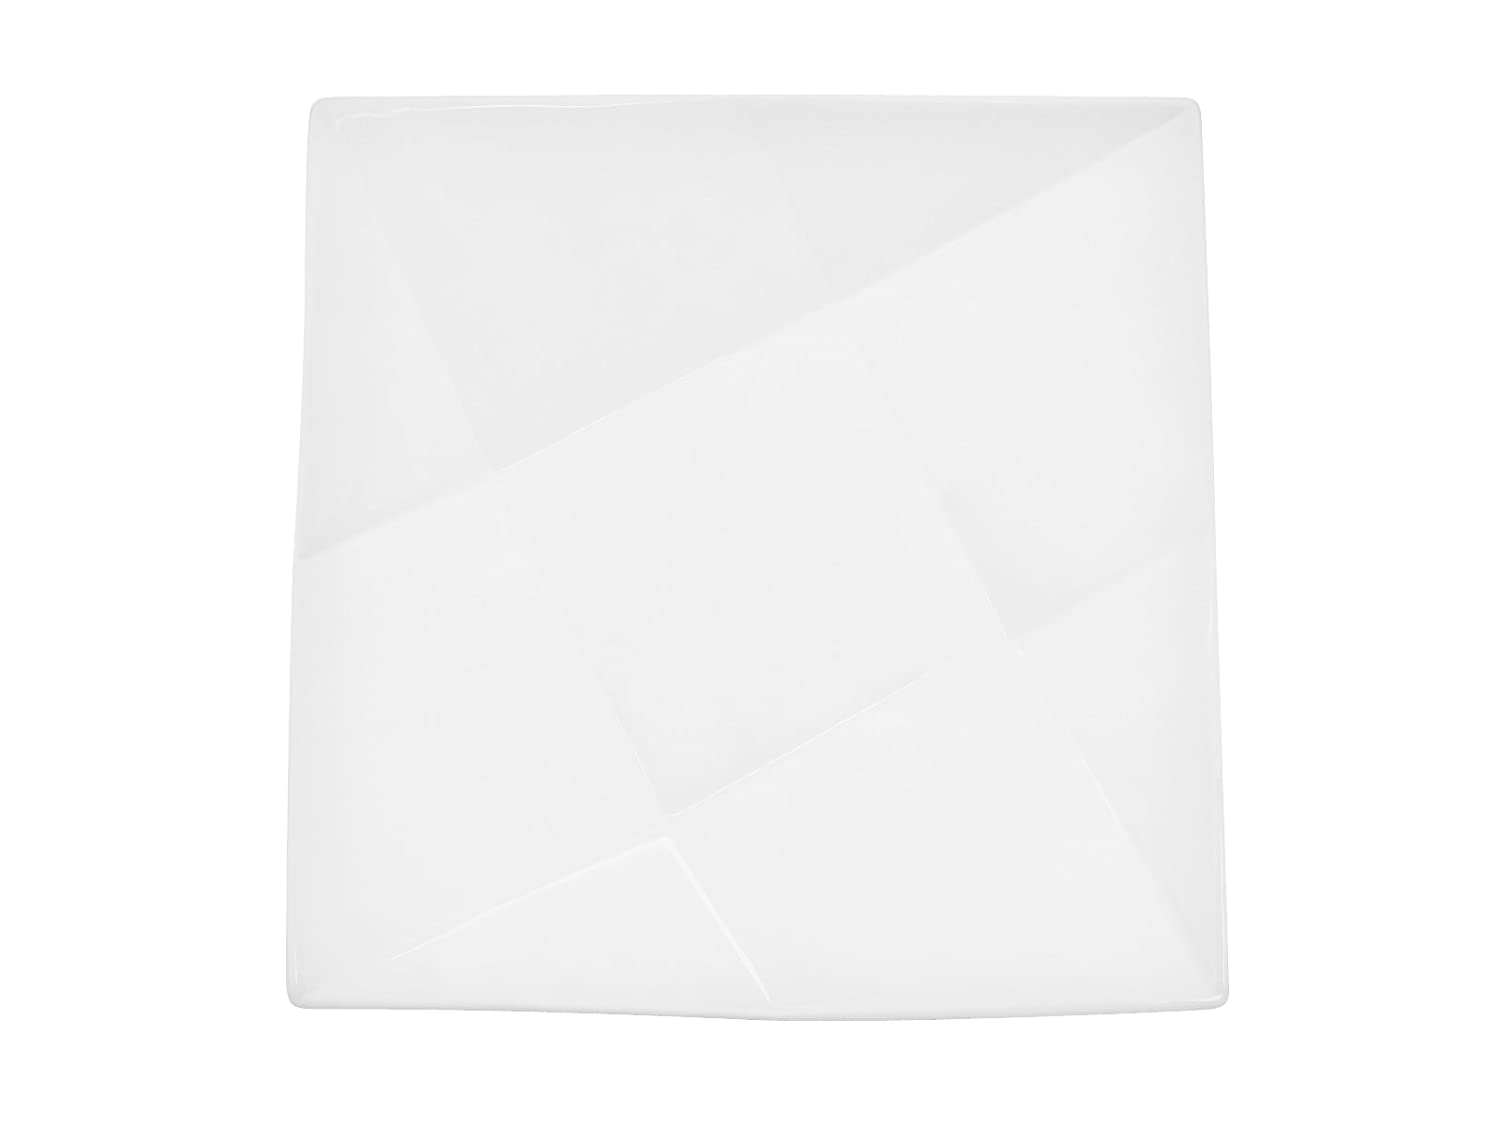 CAC China QZT-6 Crystal 6-Inch Super White Porcelain Square Plate, Box of 36